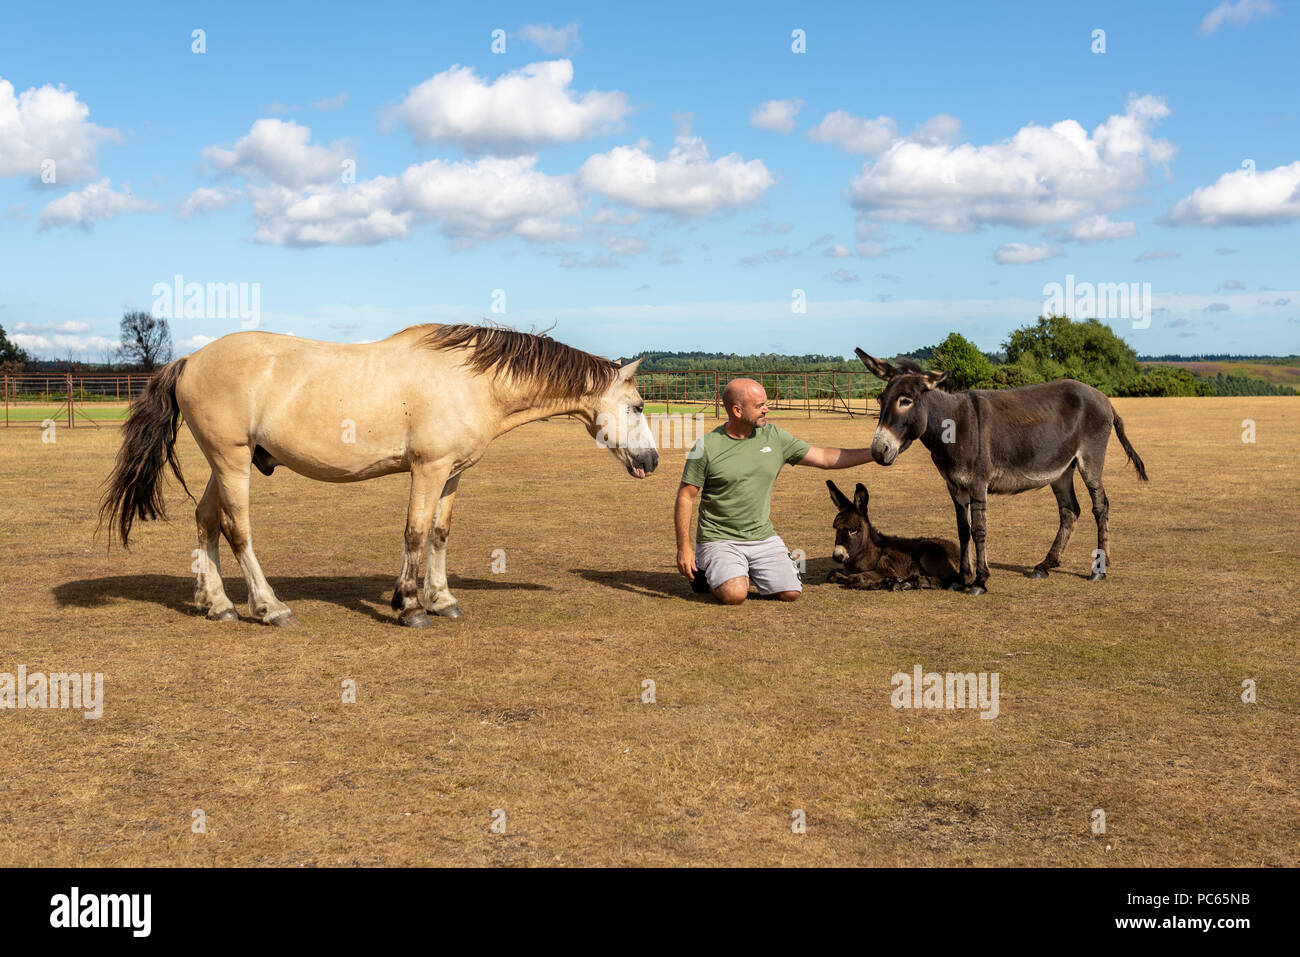 Godshill, Hampshire, UK, 31st July 2018, Weather: A holidaymaker makes some animal friends under blue skies and fluffy white clouds on the New Forest as summer makes a return after just a 3 day respite for cool wind and rain. Temperatures are on the rise again across southern England. Credit: Paul Biggins/Alamy Live News - Stock Image